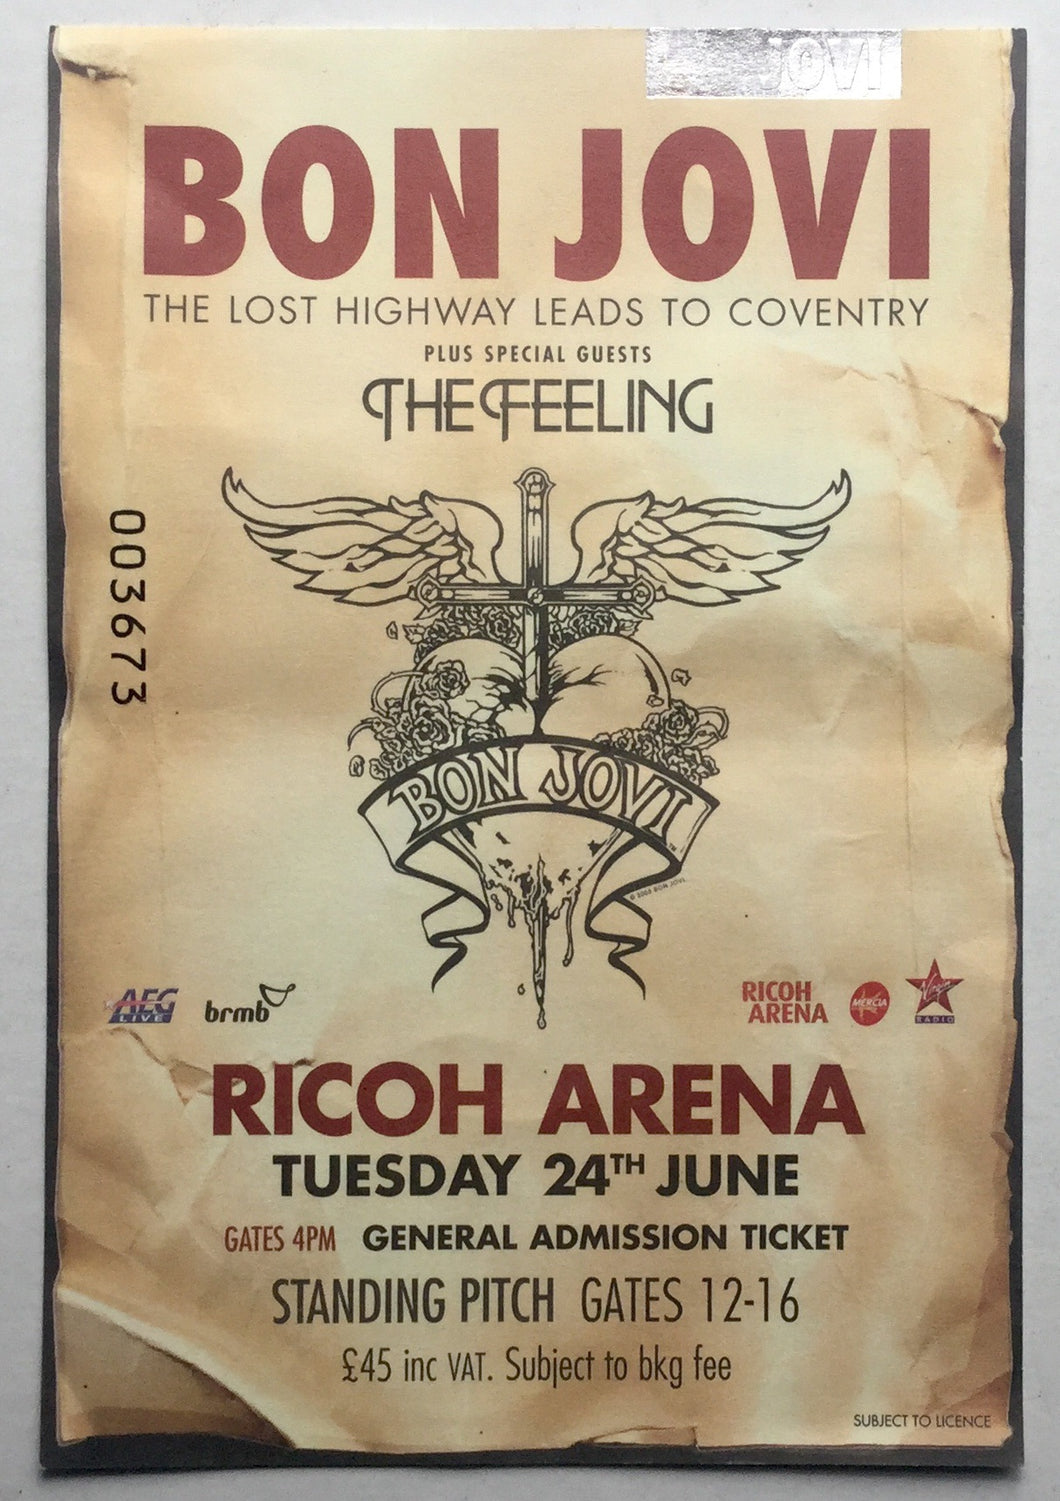 Bon Jovi Original Used Concert Ticket Ricoh Arena Coventry 24th June 2008